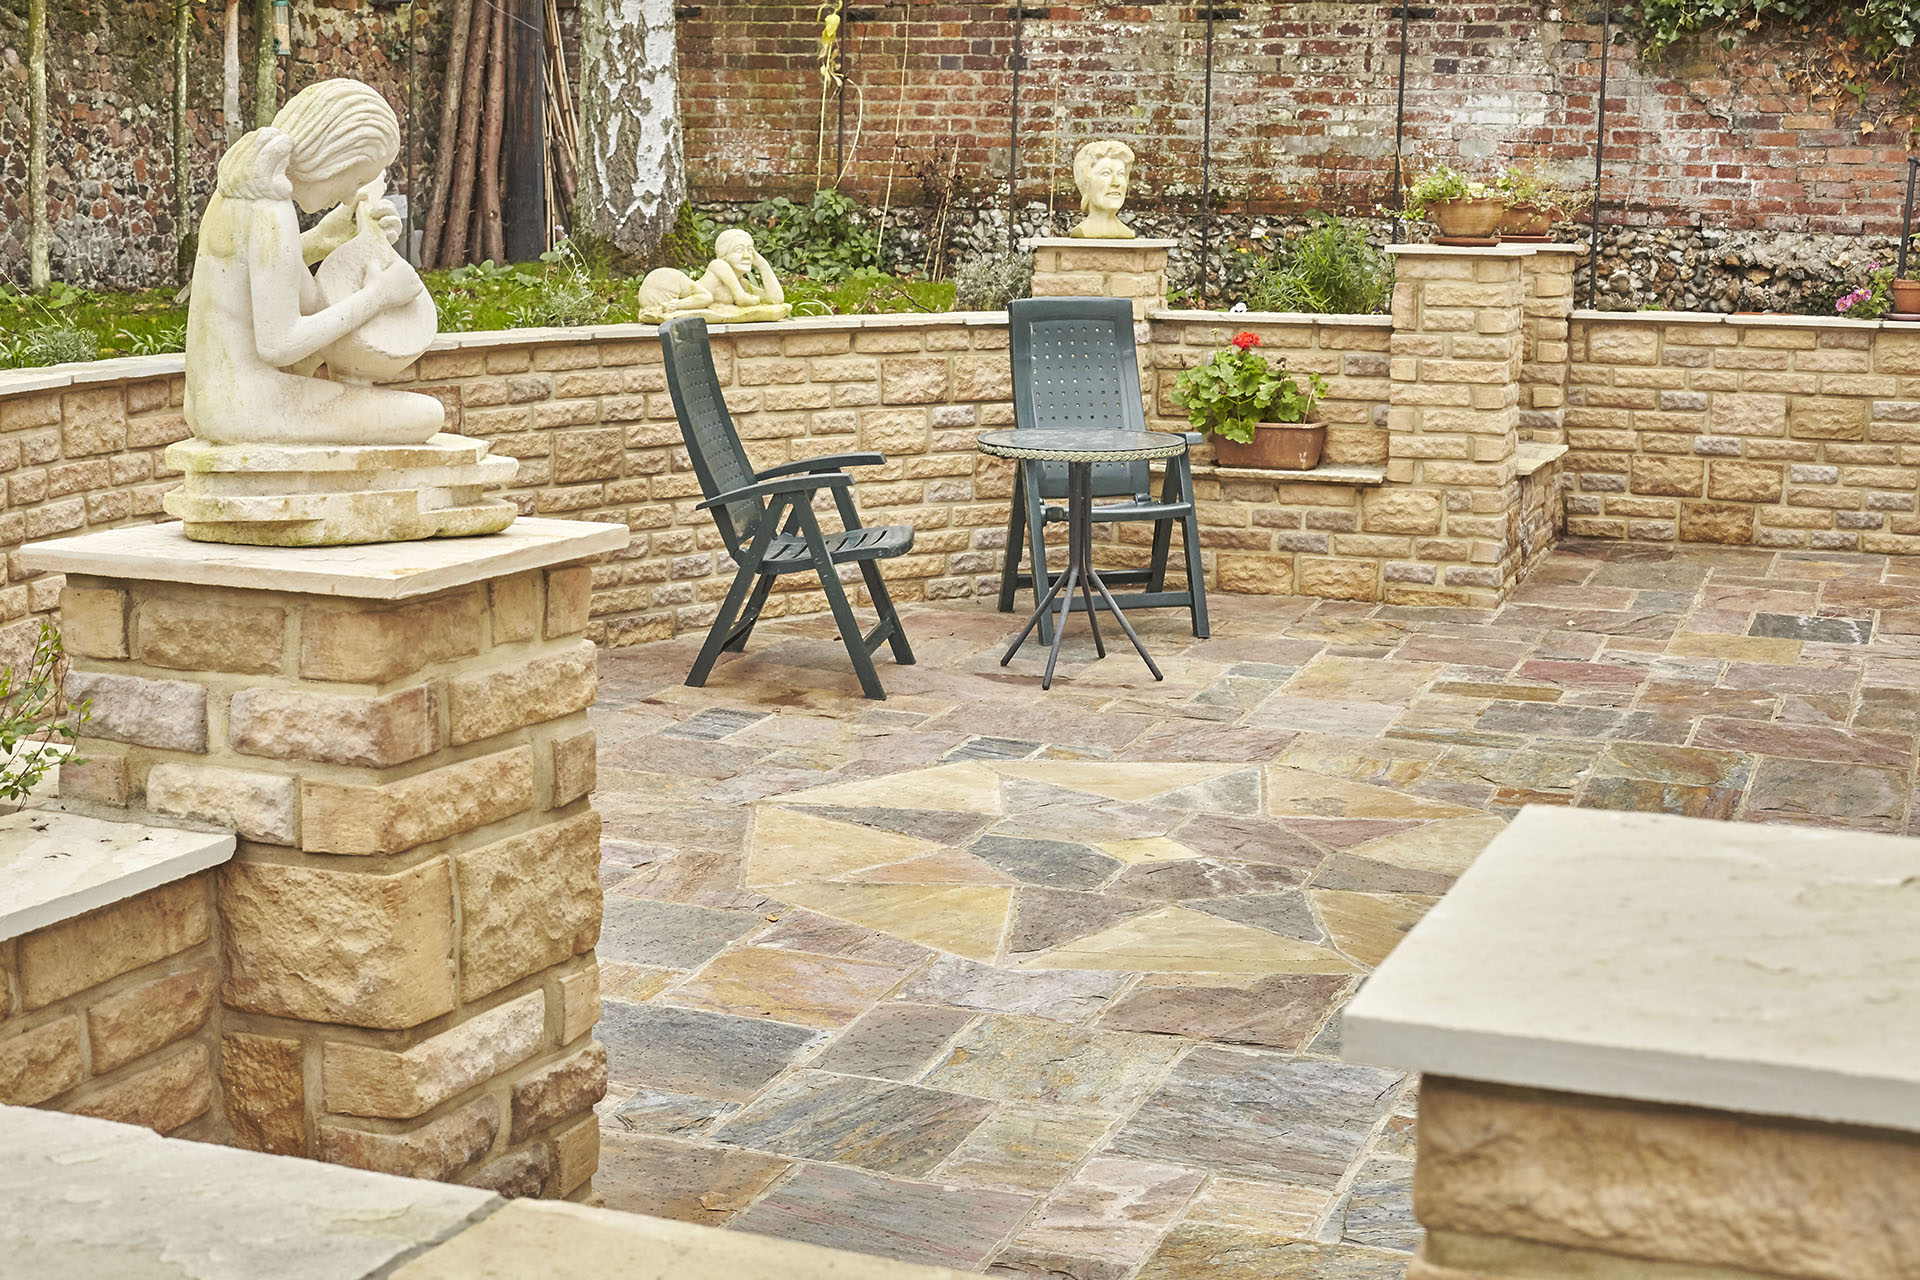 Brett-quarztite-patio-with-walling